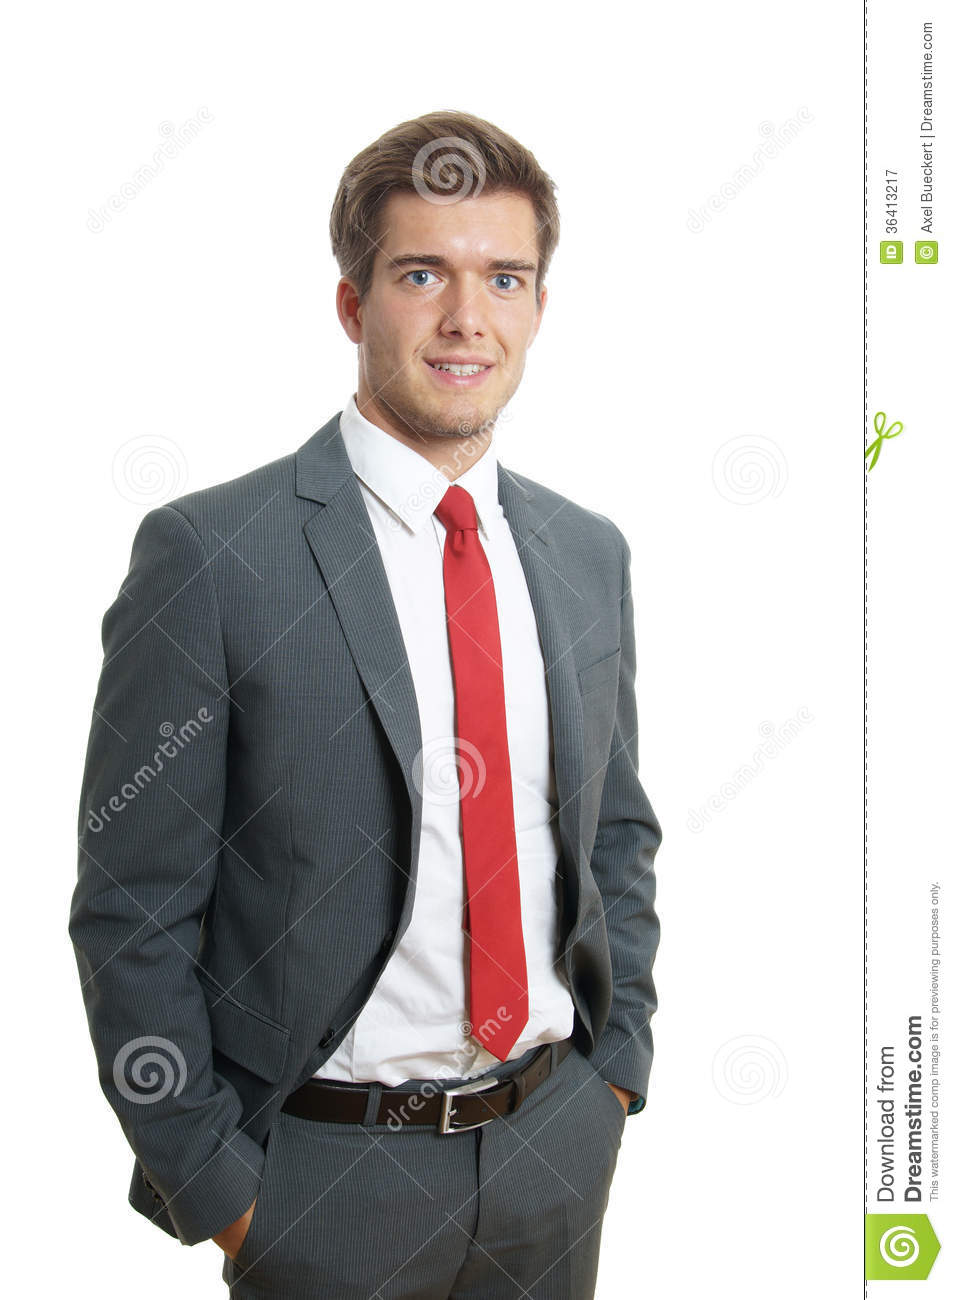 Young Businessman Smiling Royalty Free Stock Photography ...